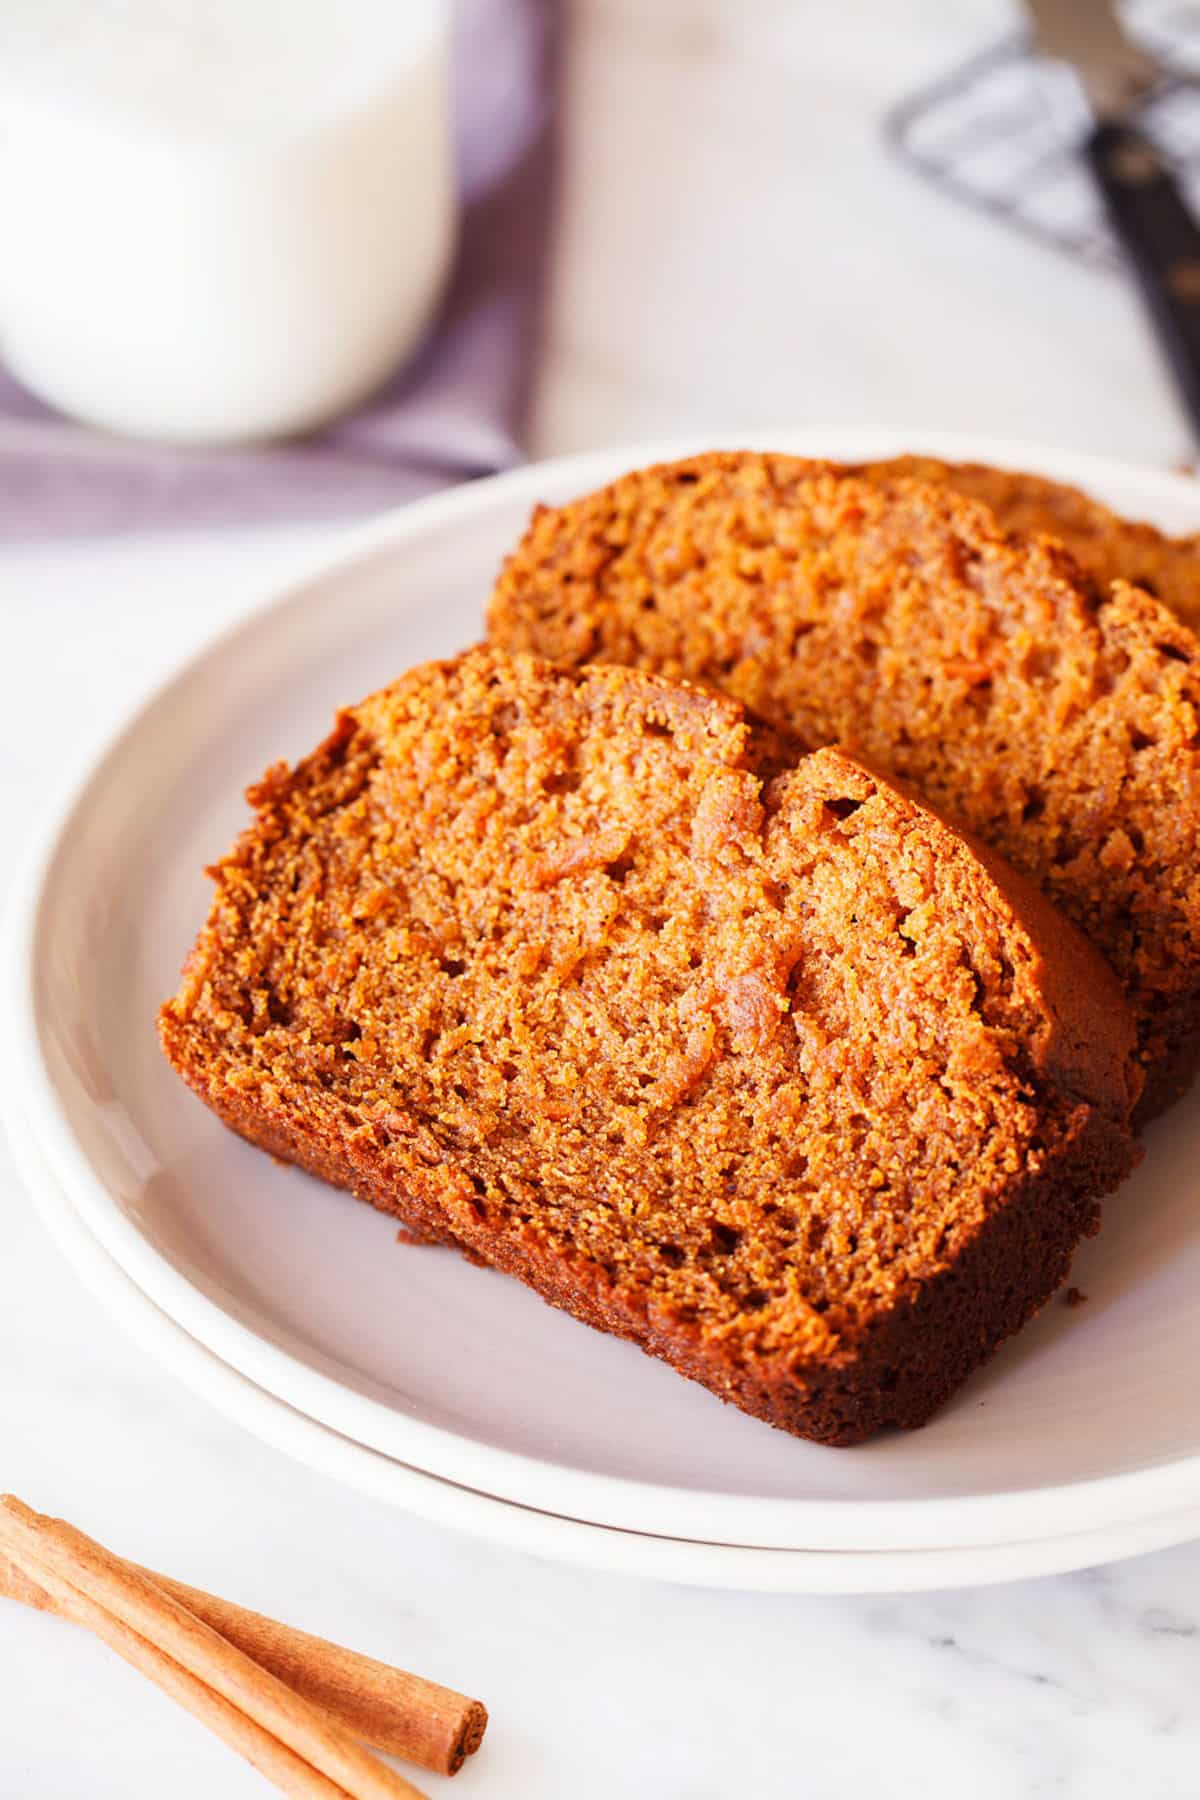 two slices of sweet potato bread on a plate